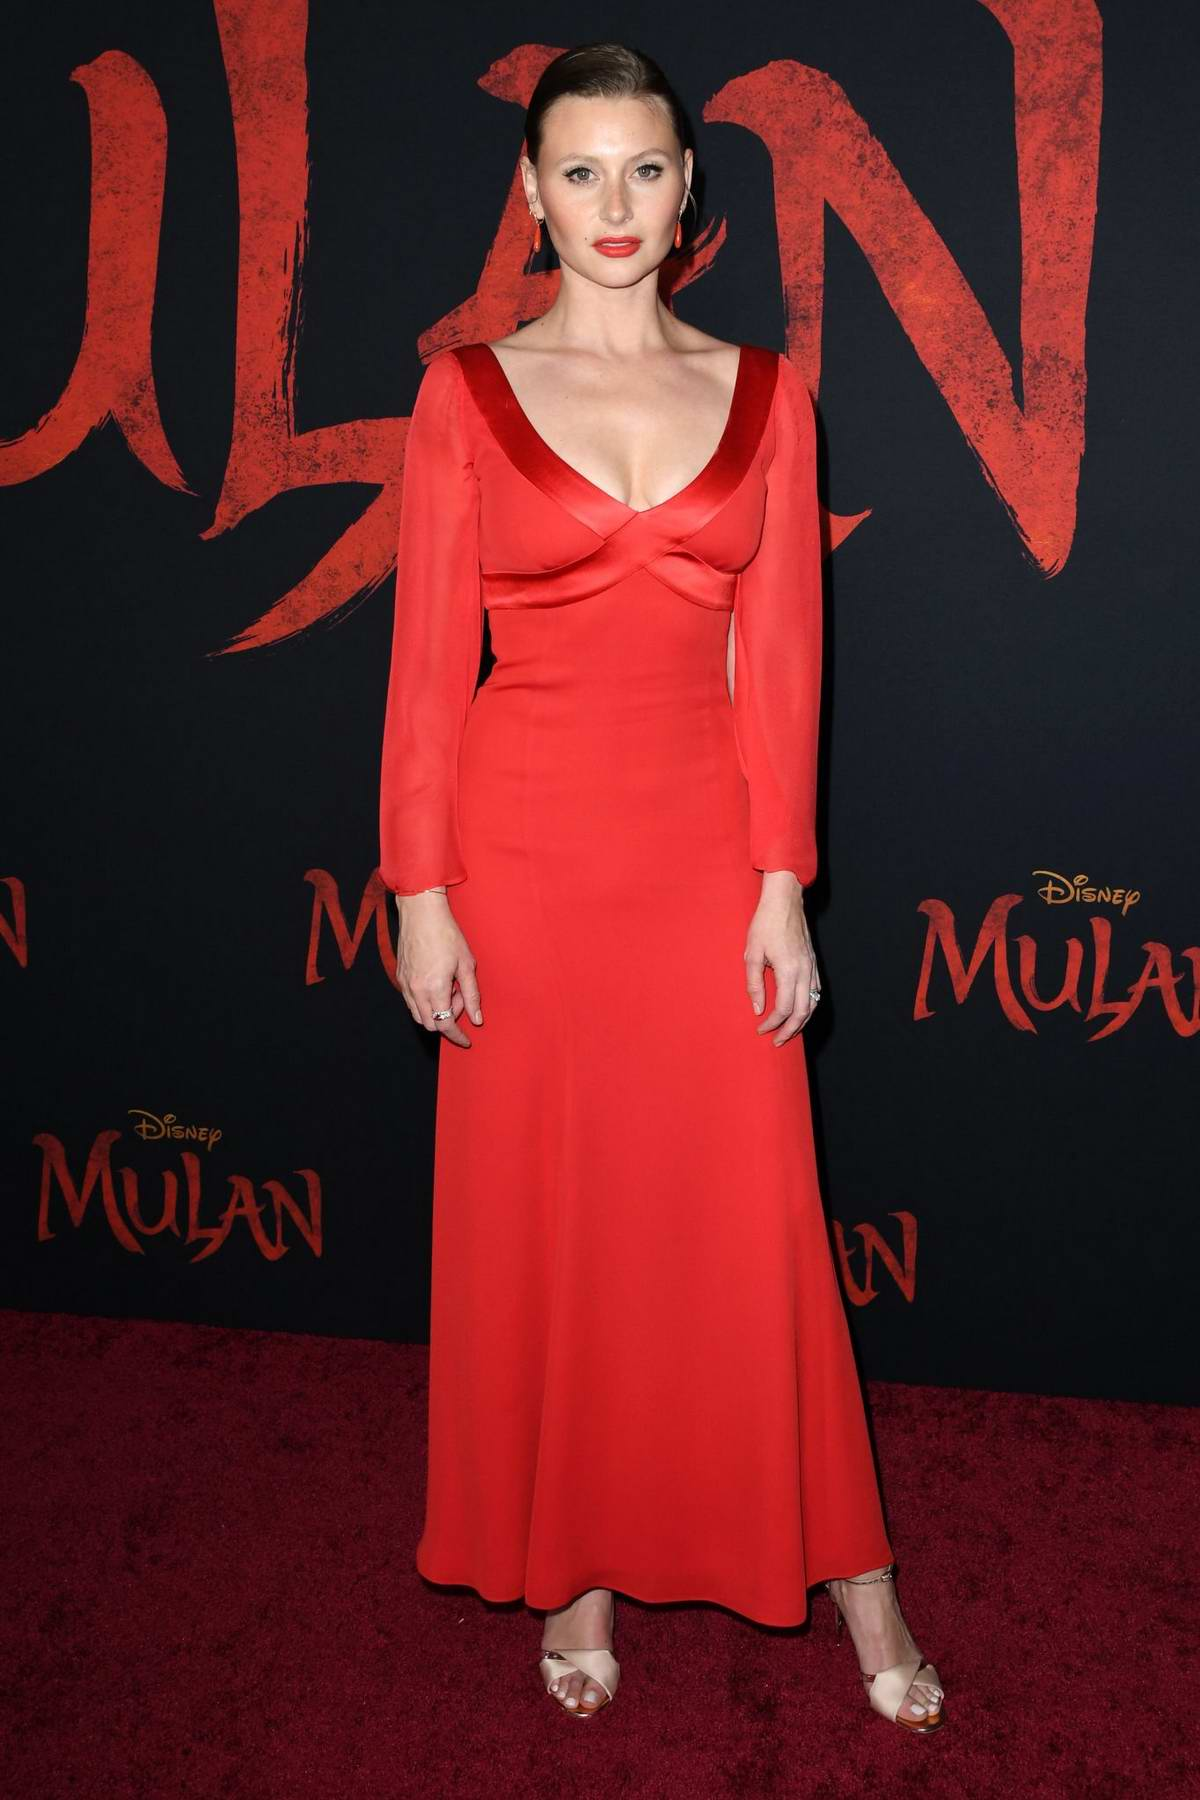 Aly Michalka attends the Premiere of Disney's 'Mulan' at Dolby Theatre in Los Angeles